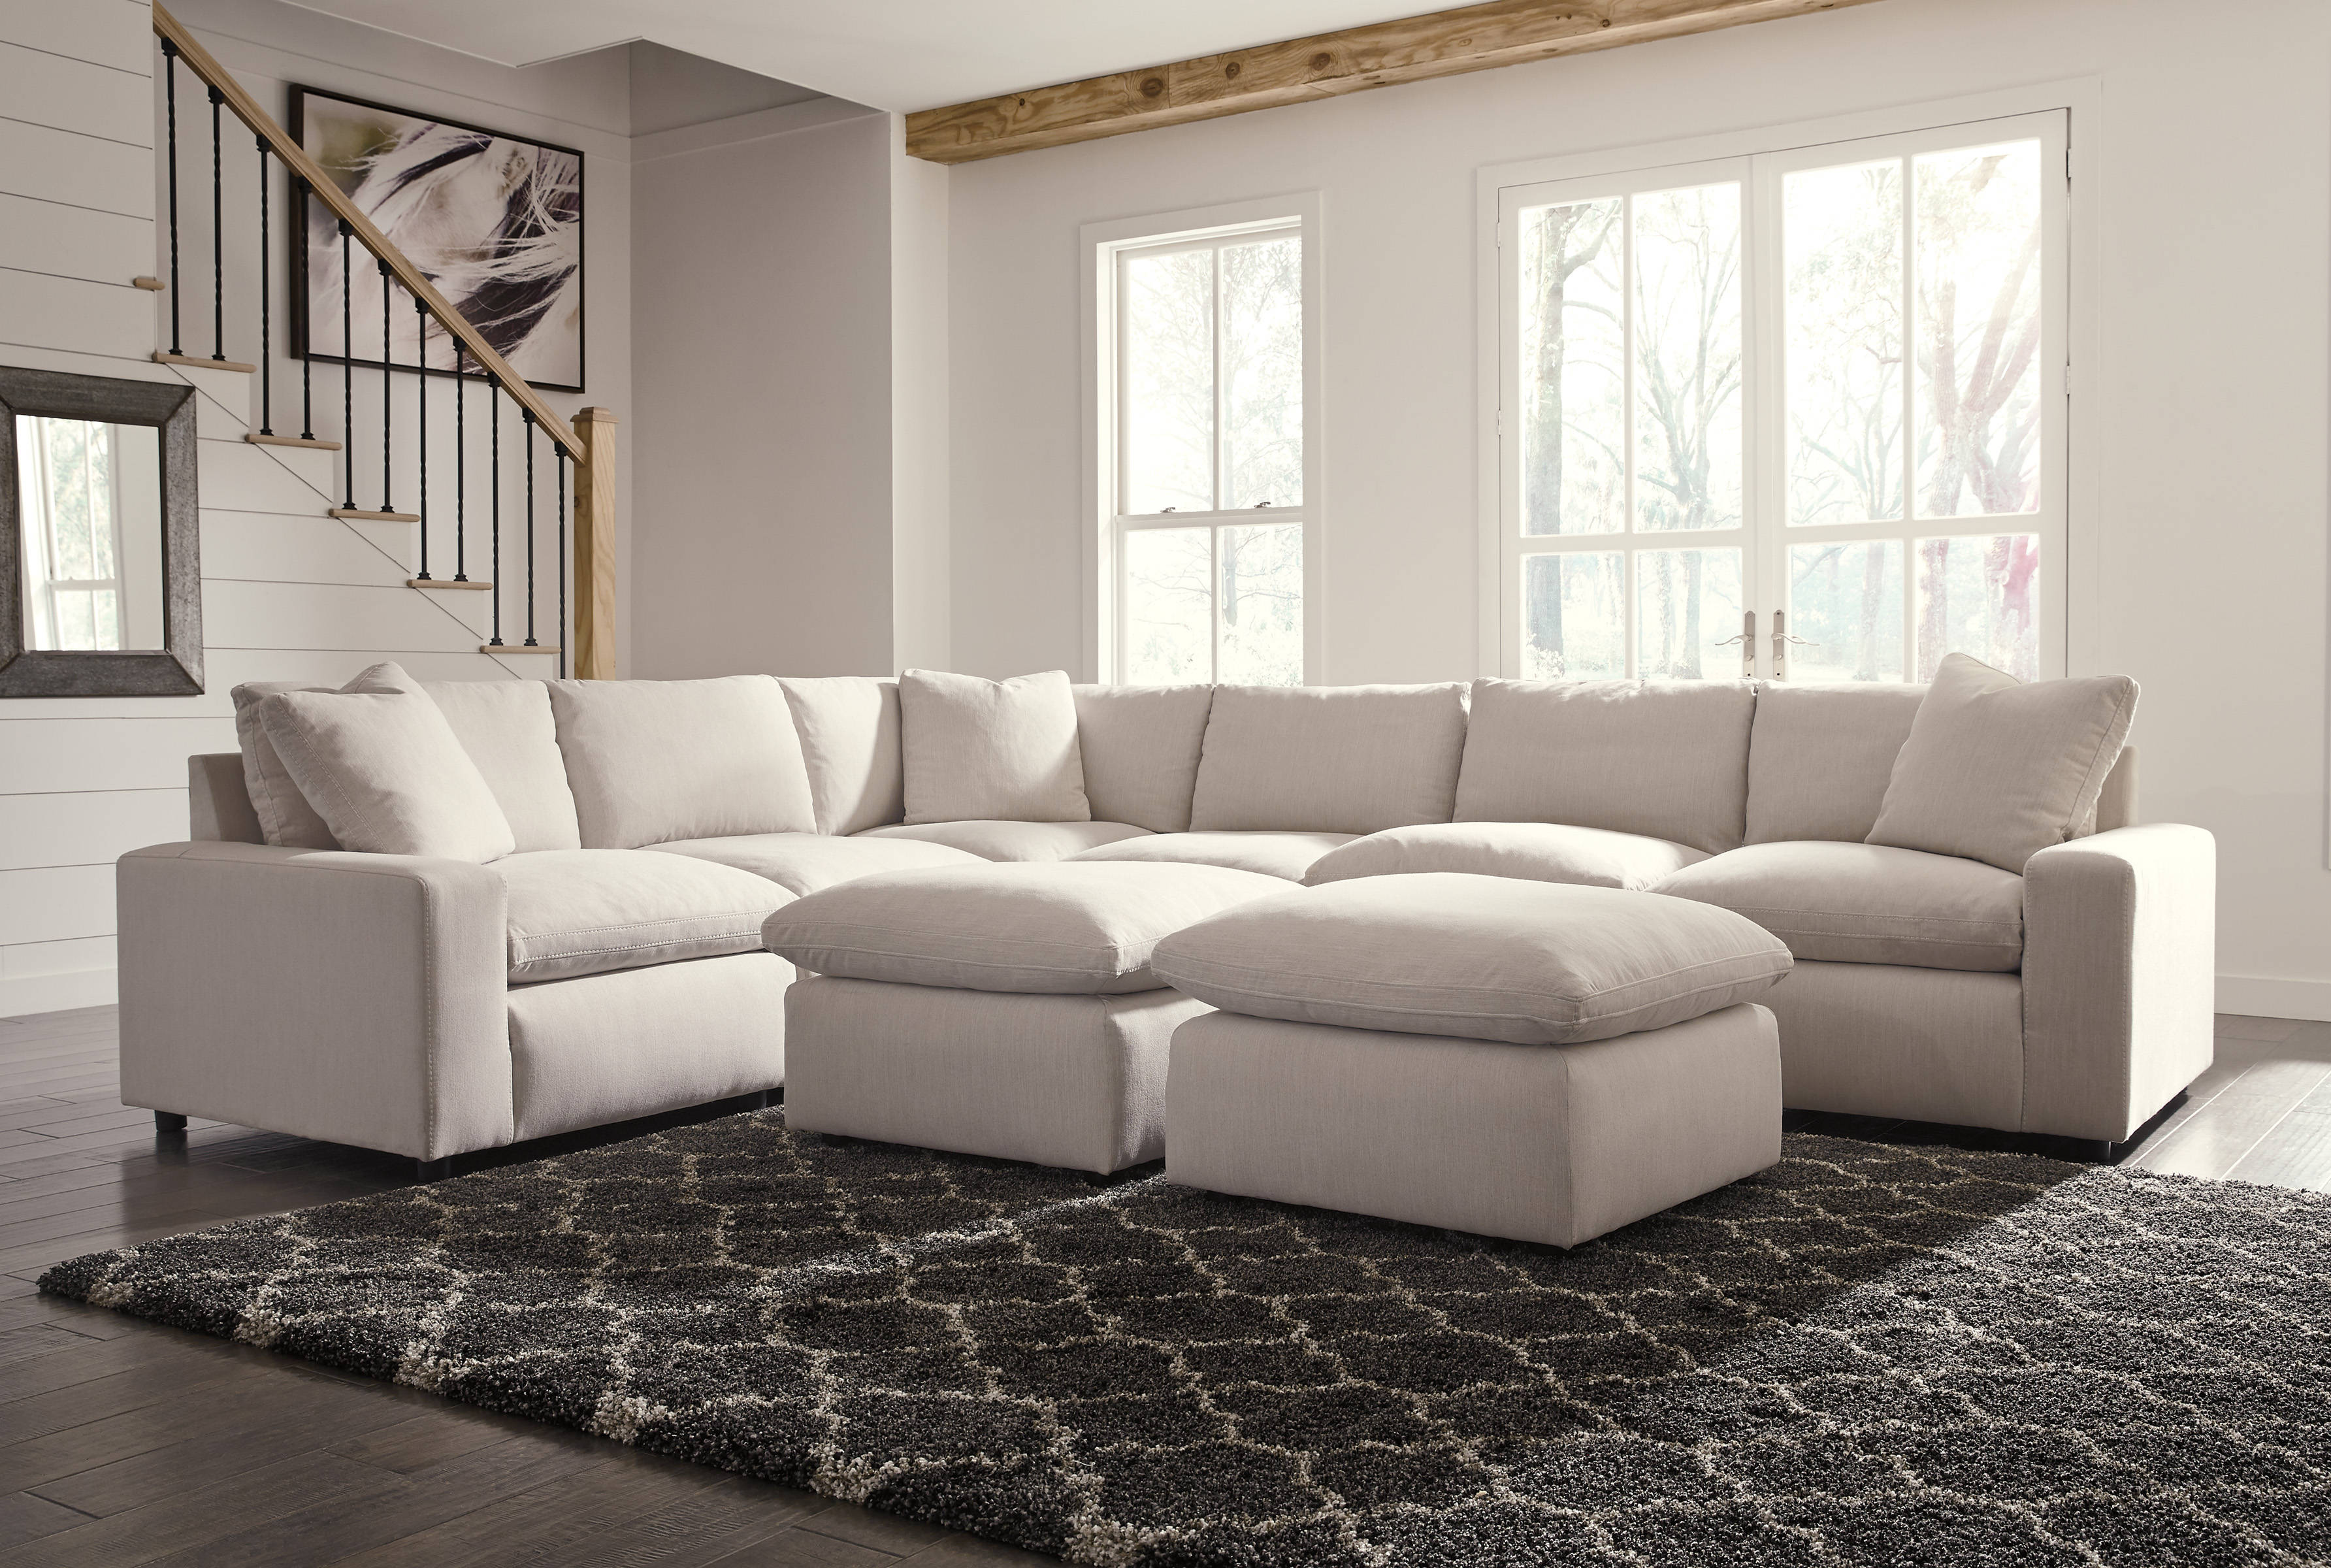 Ashley Furniture Savesto Ivory 8pc Sectional With Ottoman The